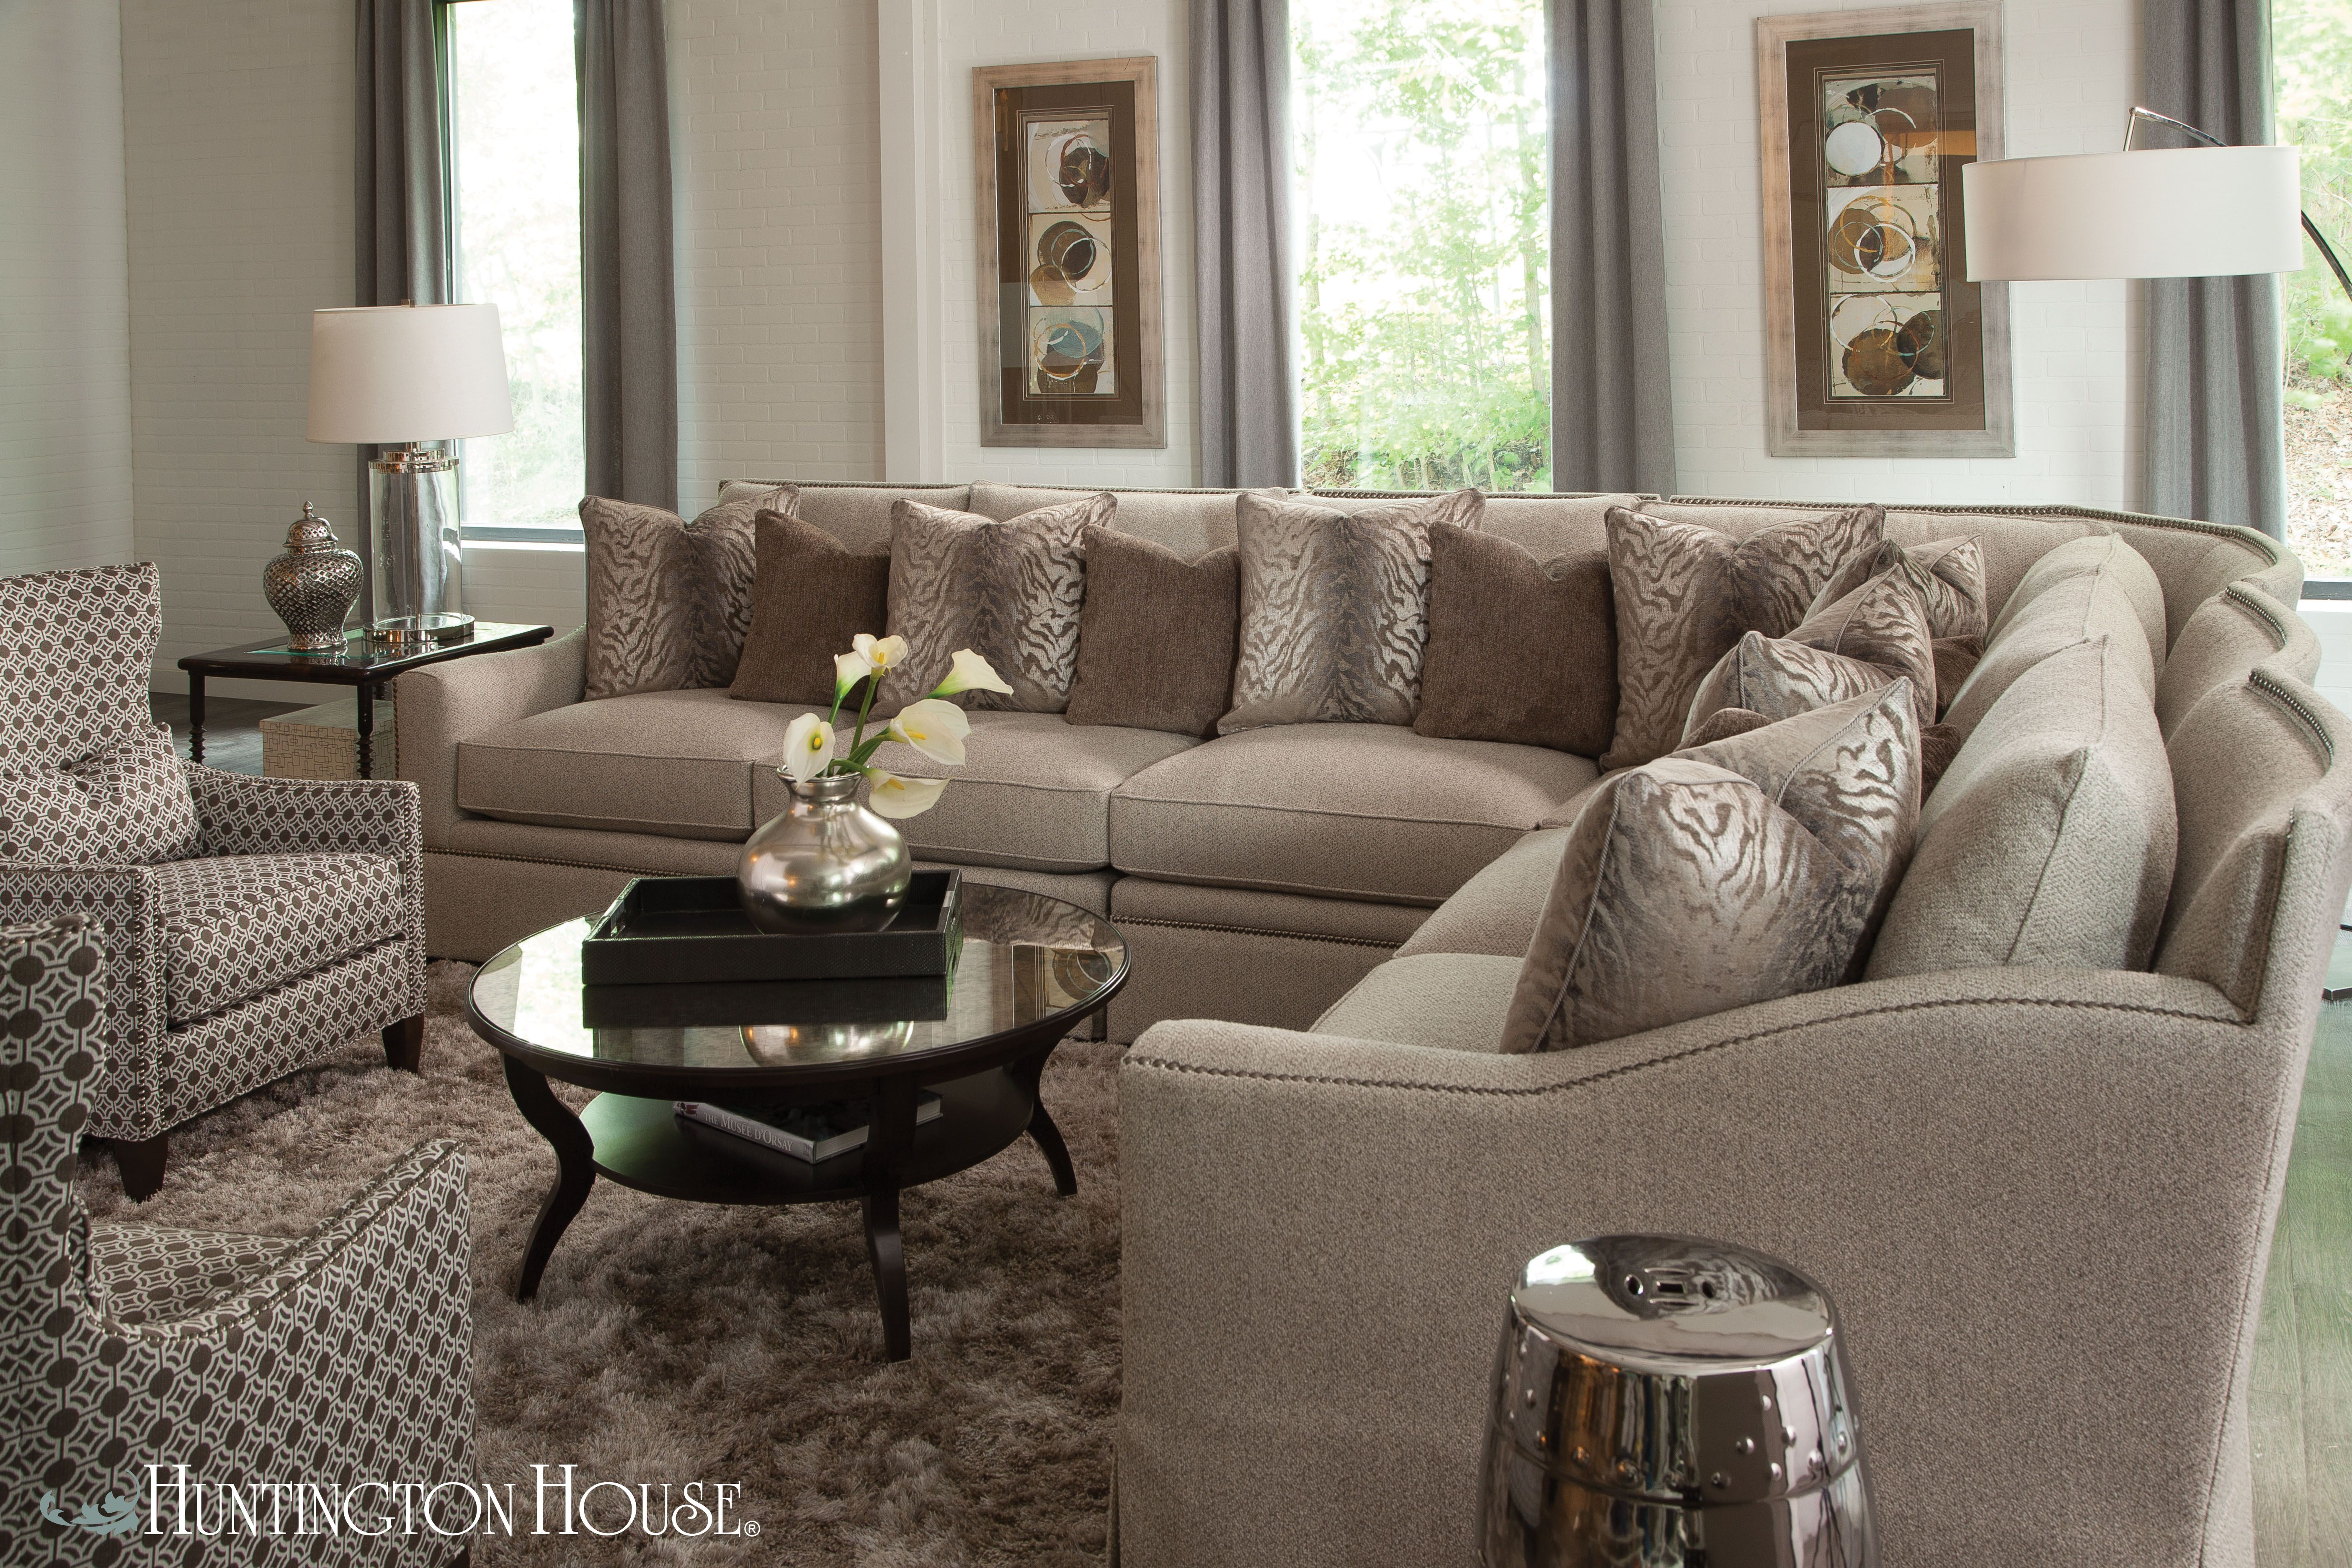 3366 sectional from Huntington House luxurious sink in fort